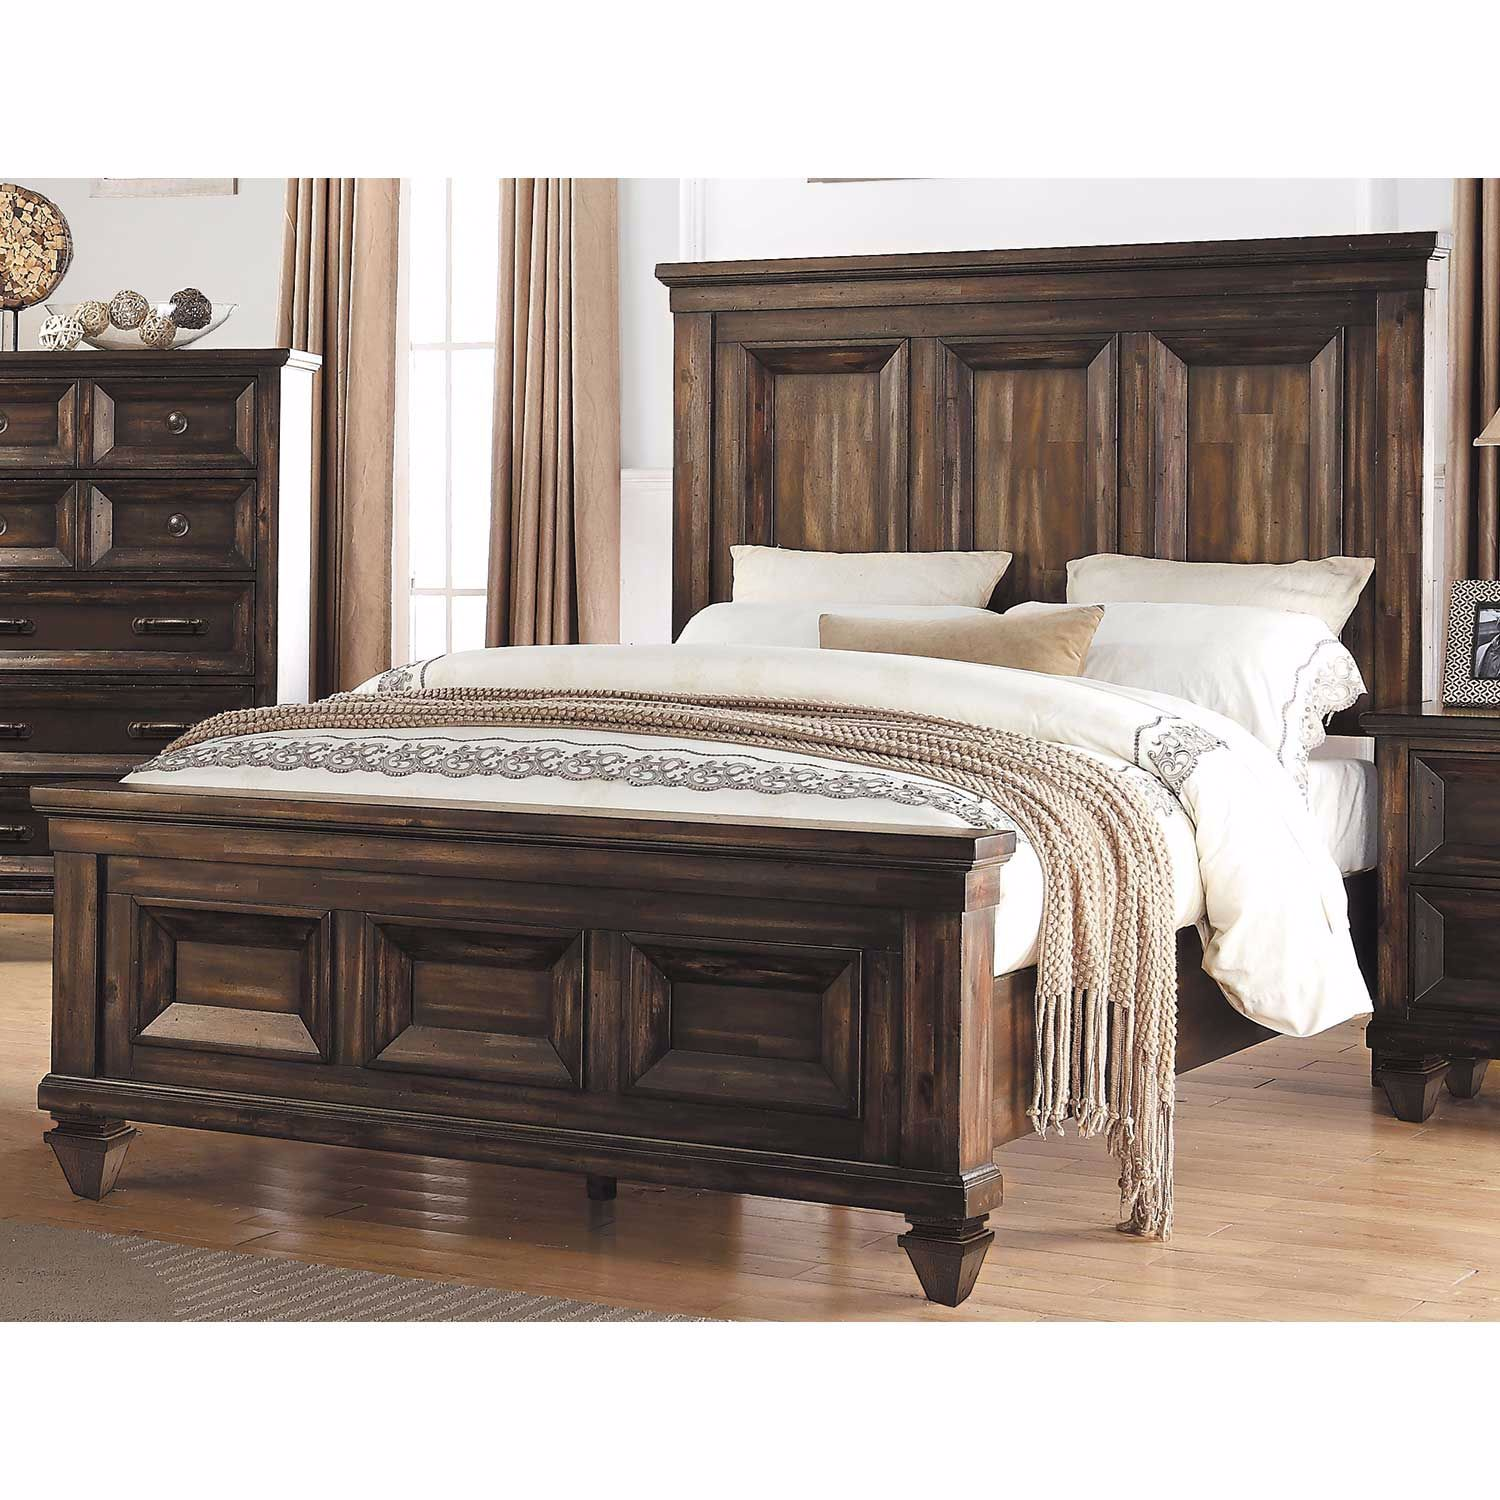 Picture of Sevilla King Panel Bed